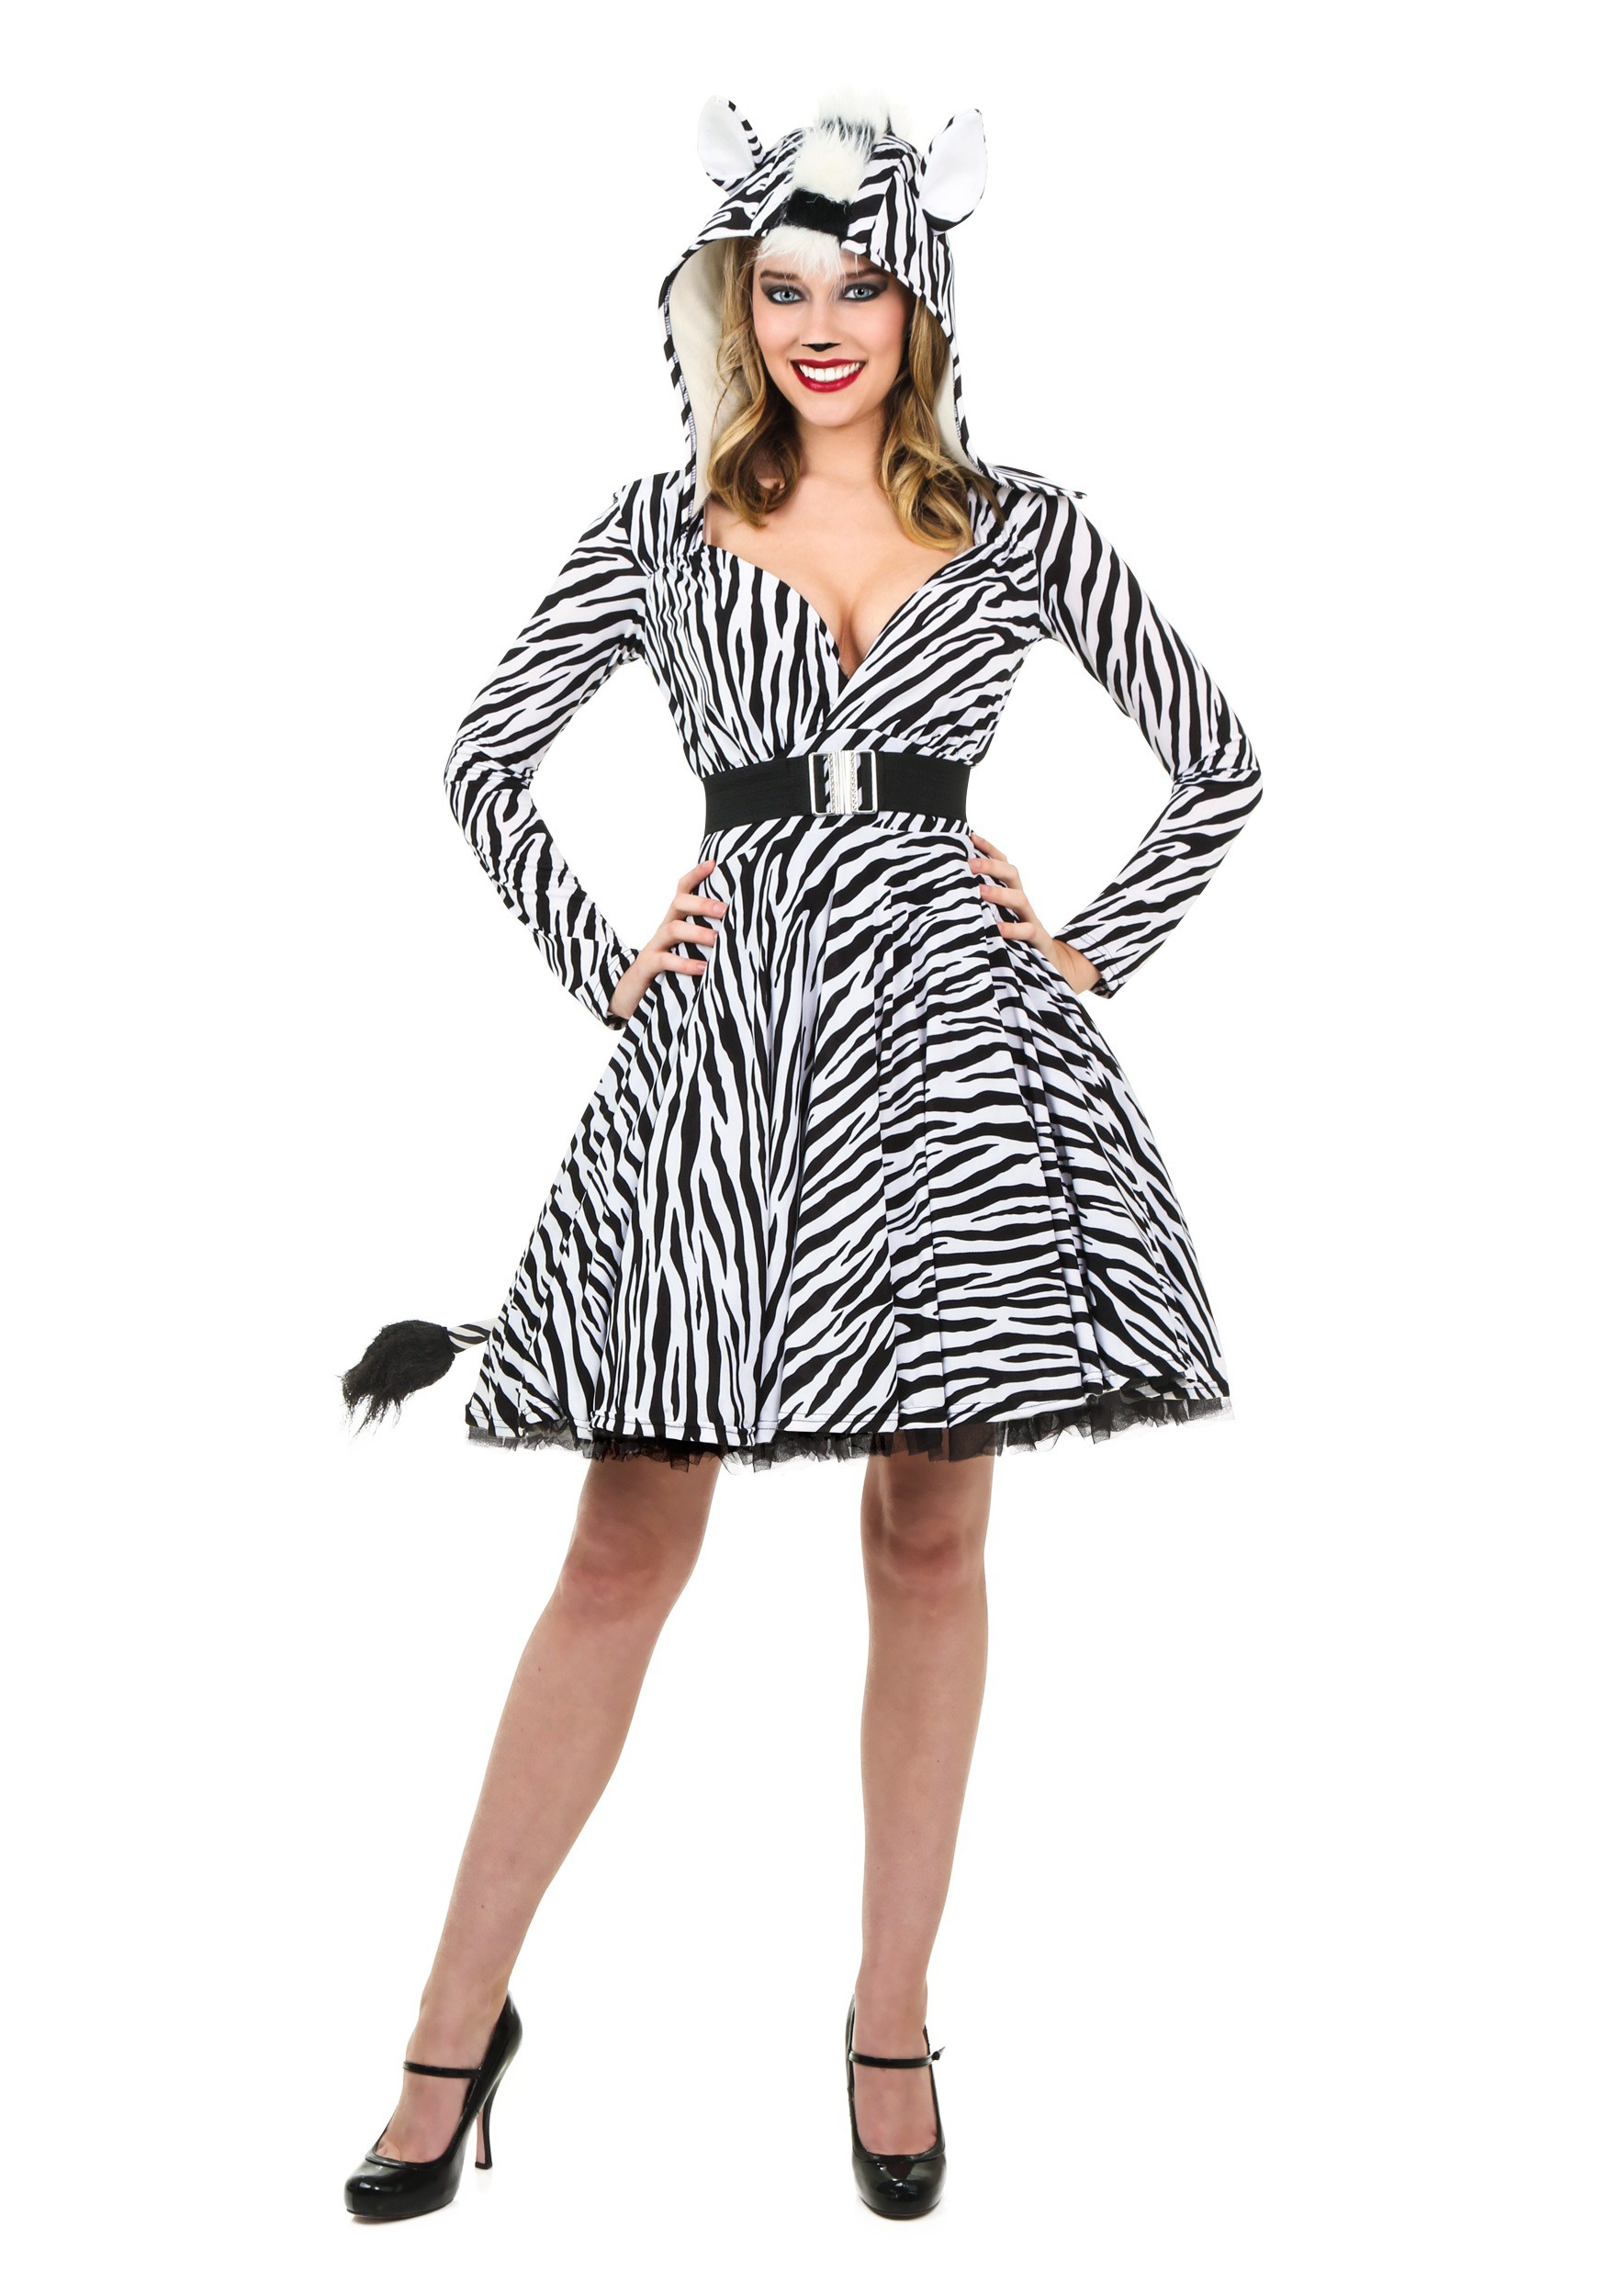 Women's Zebra Costume